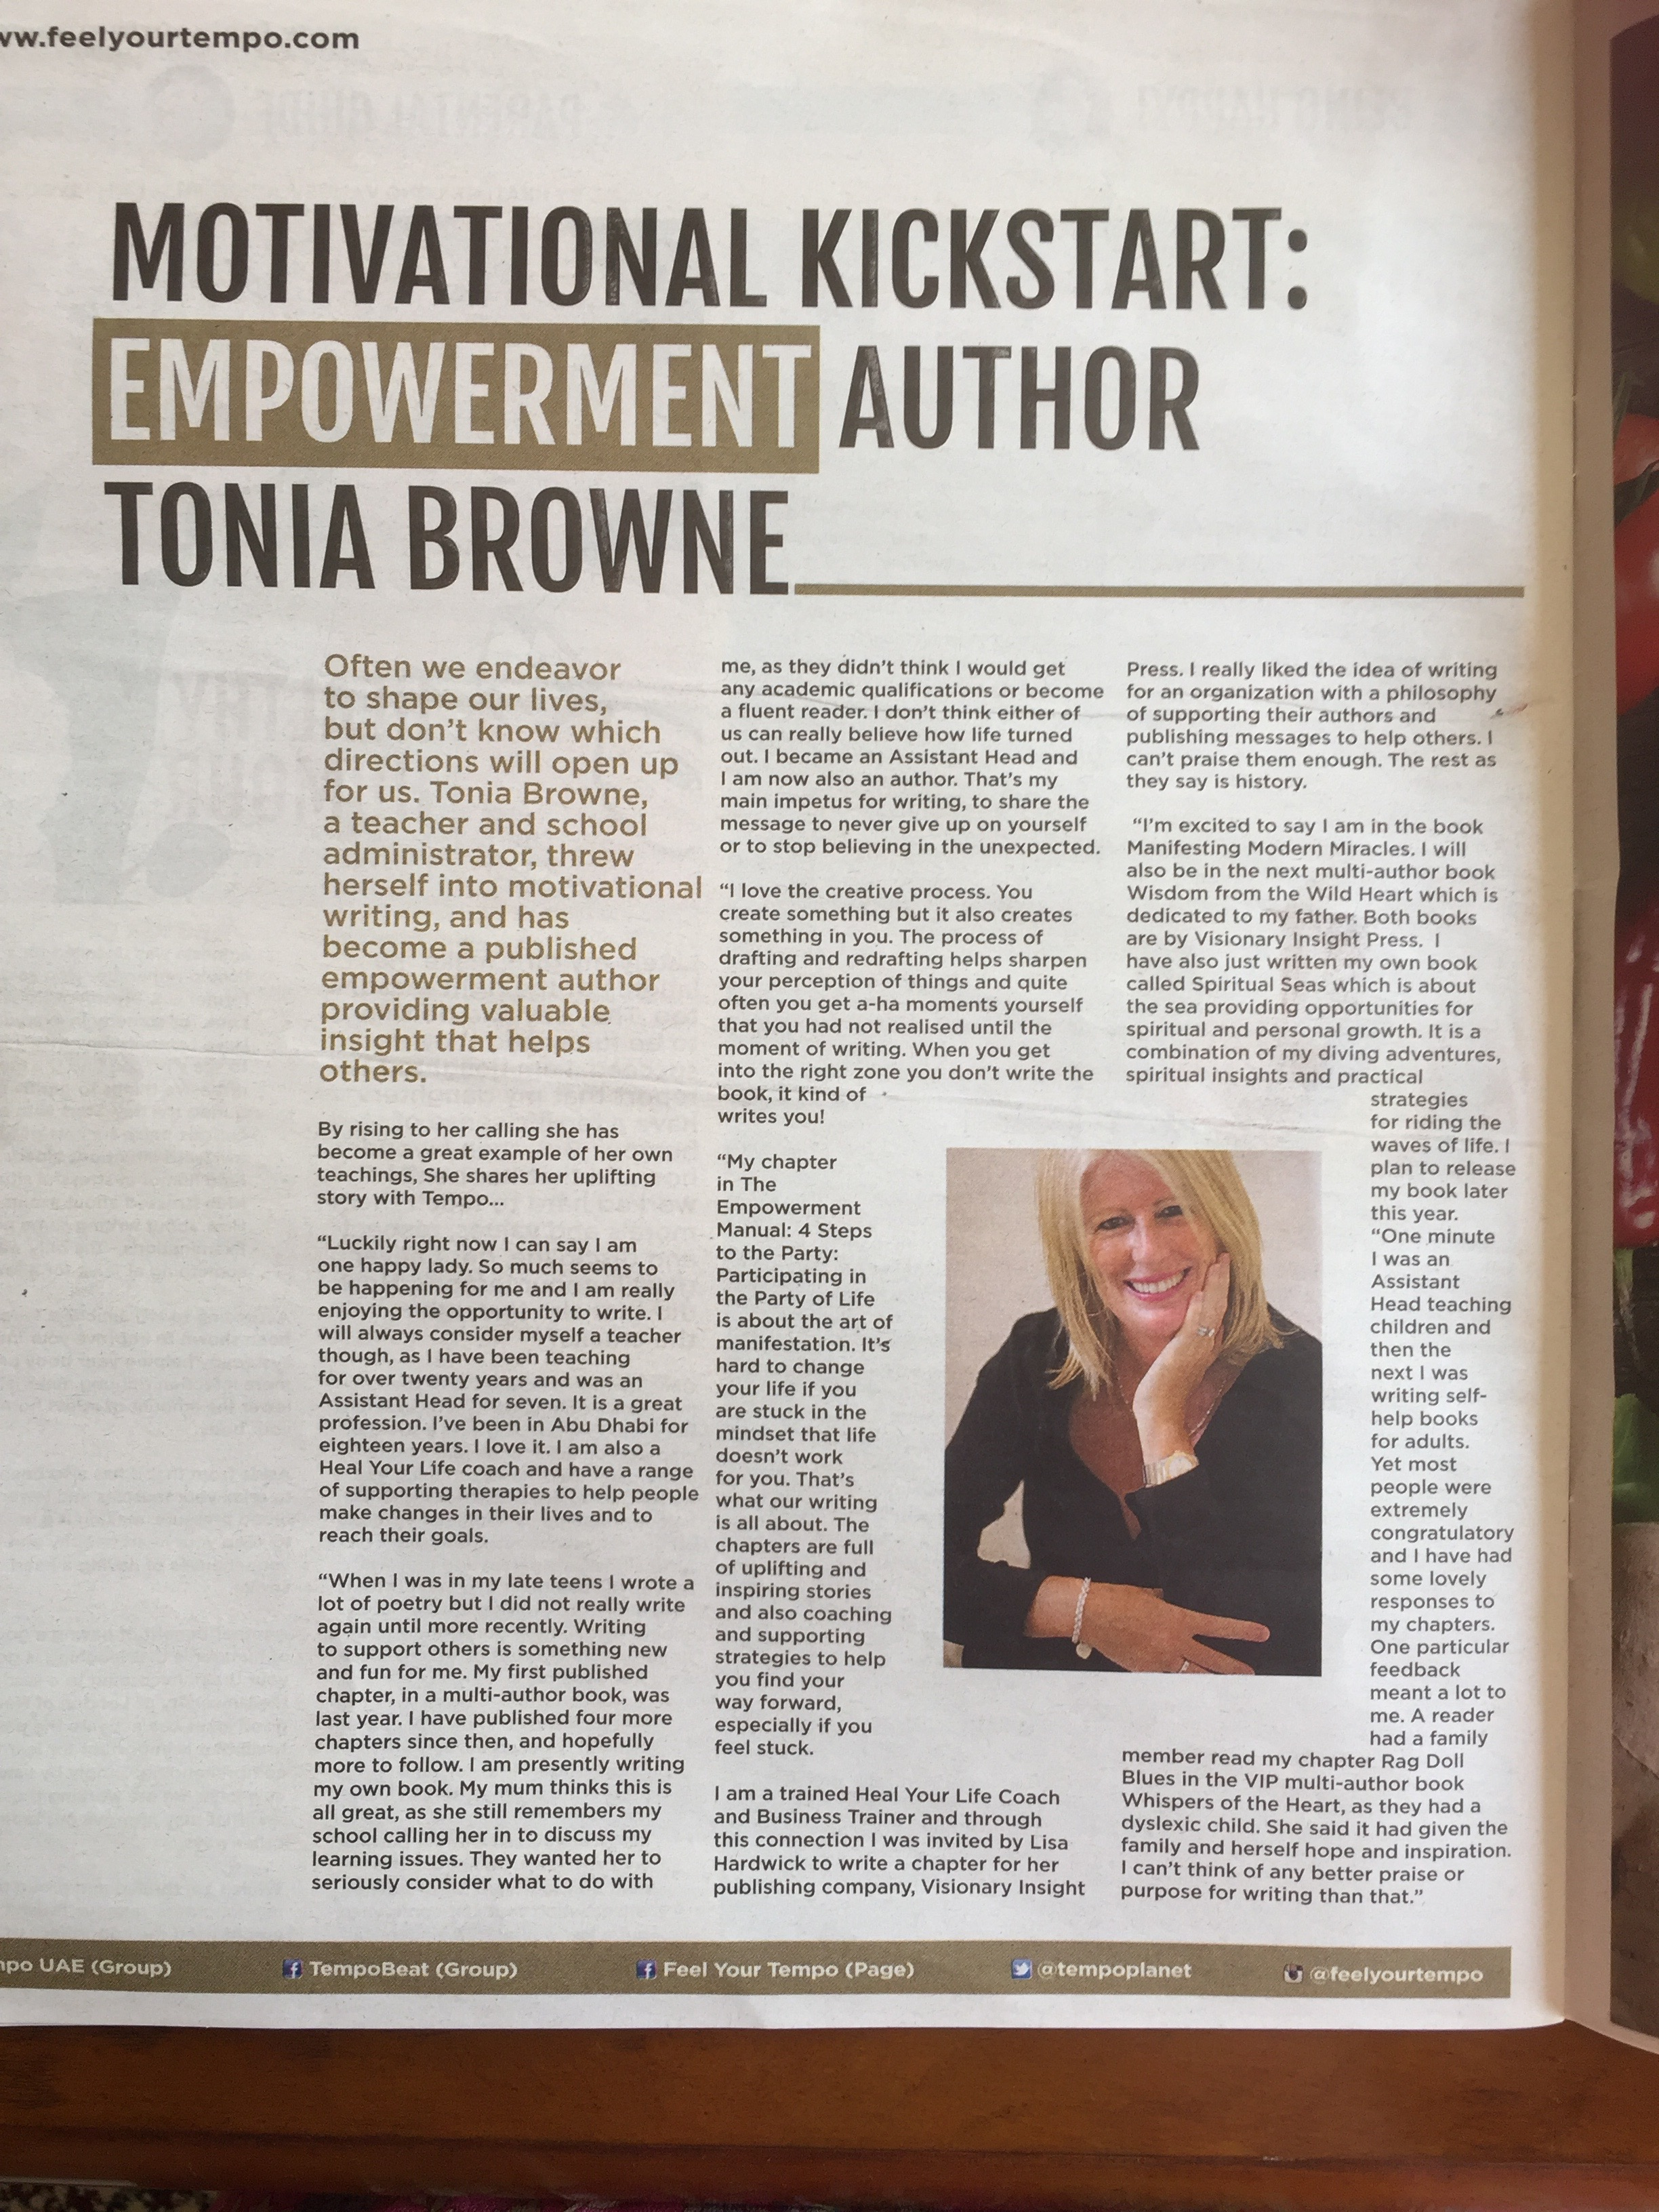 EMPOWERMENT AUTHOR